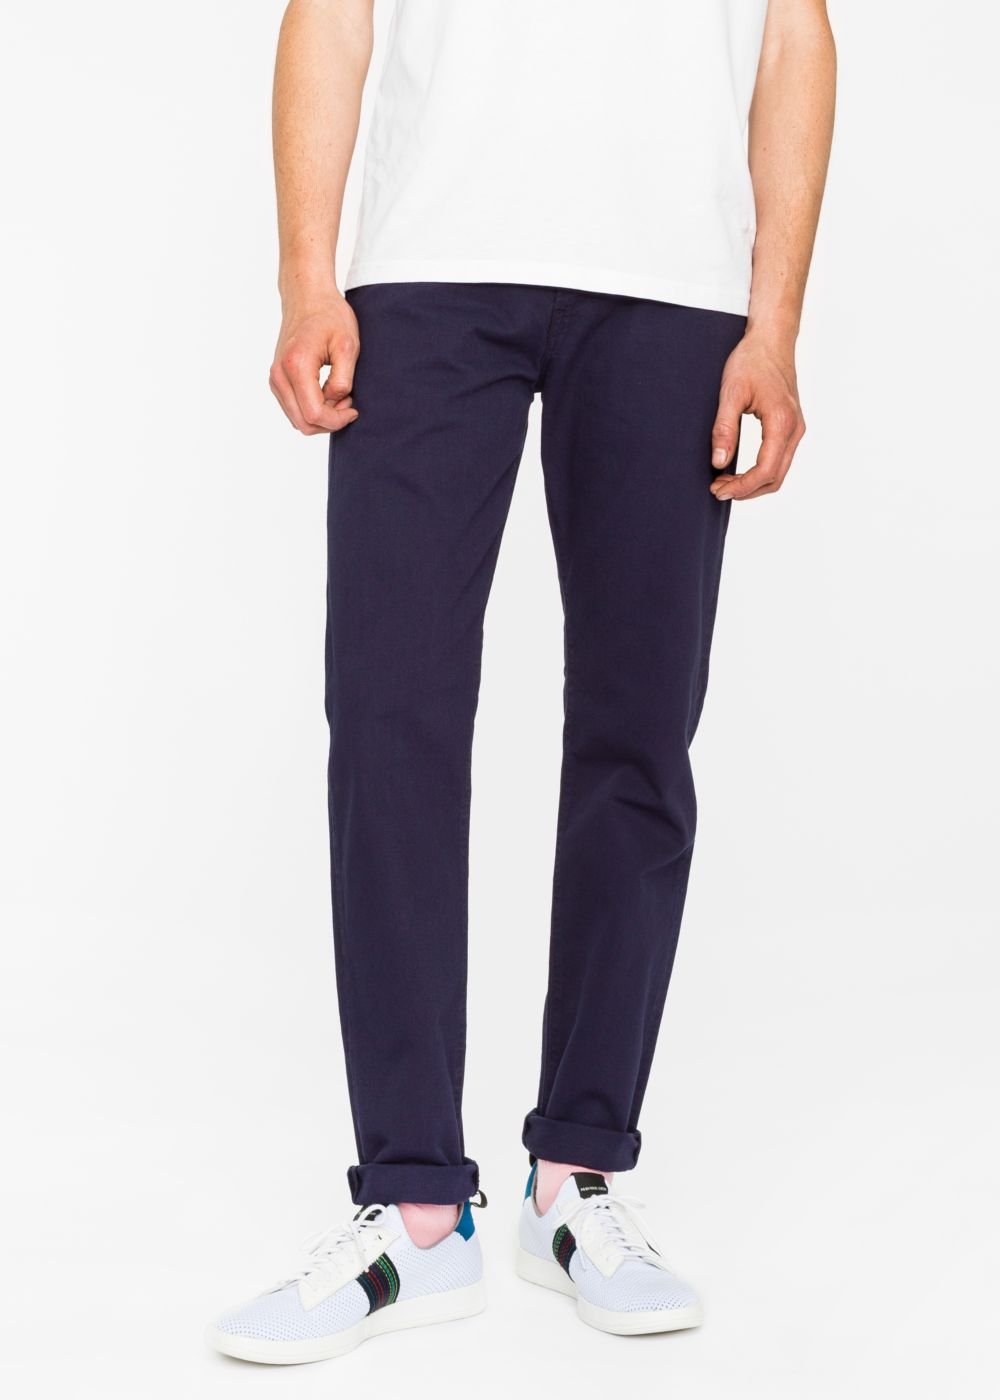 Paul Smith Men's Tapered-Fit 9oz Garment-Dye Navy Denim Jeans